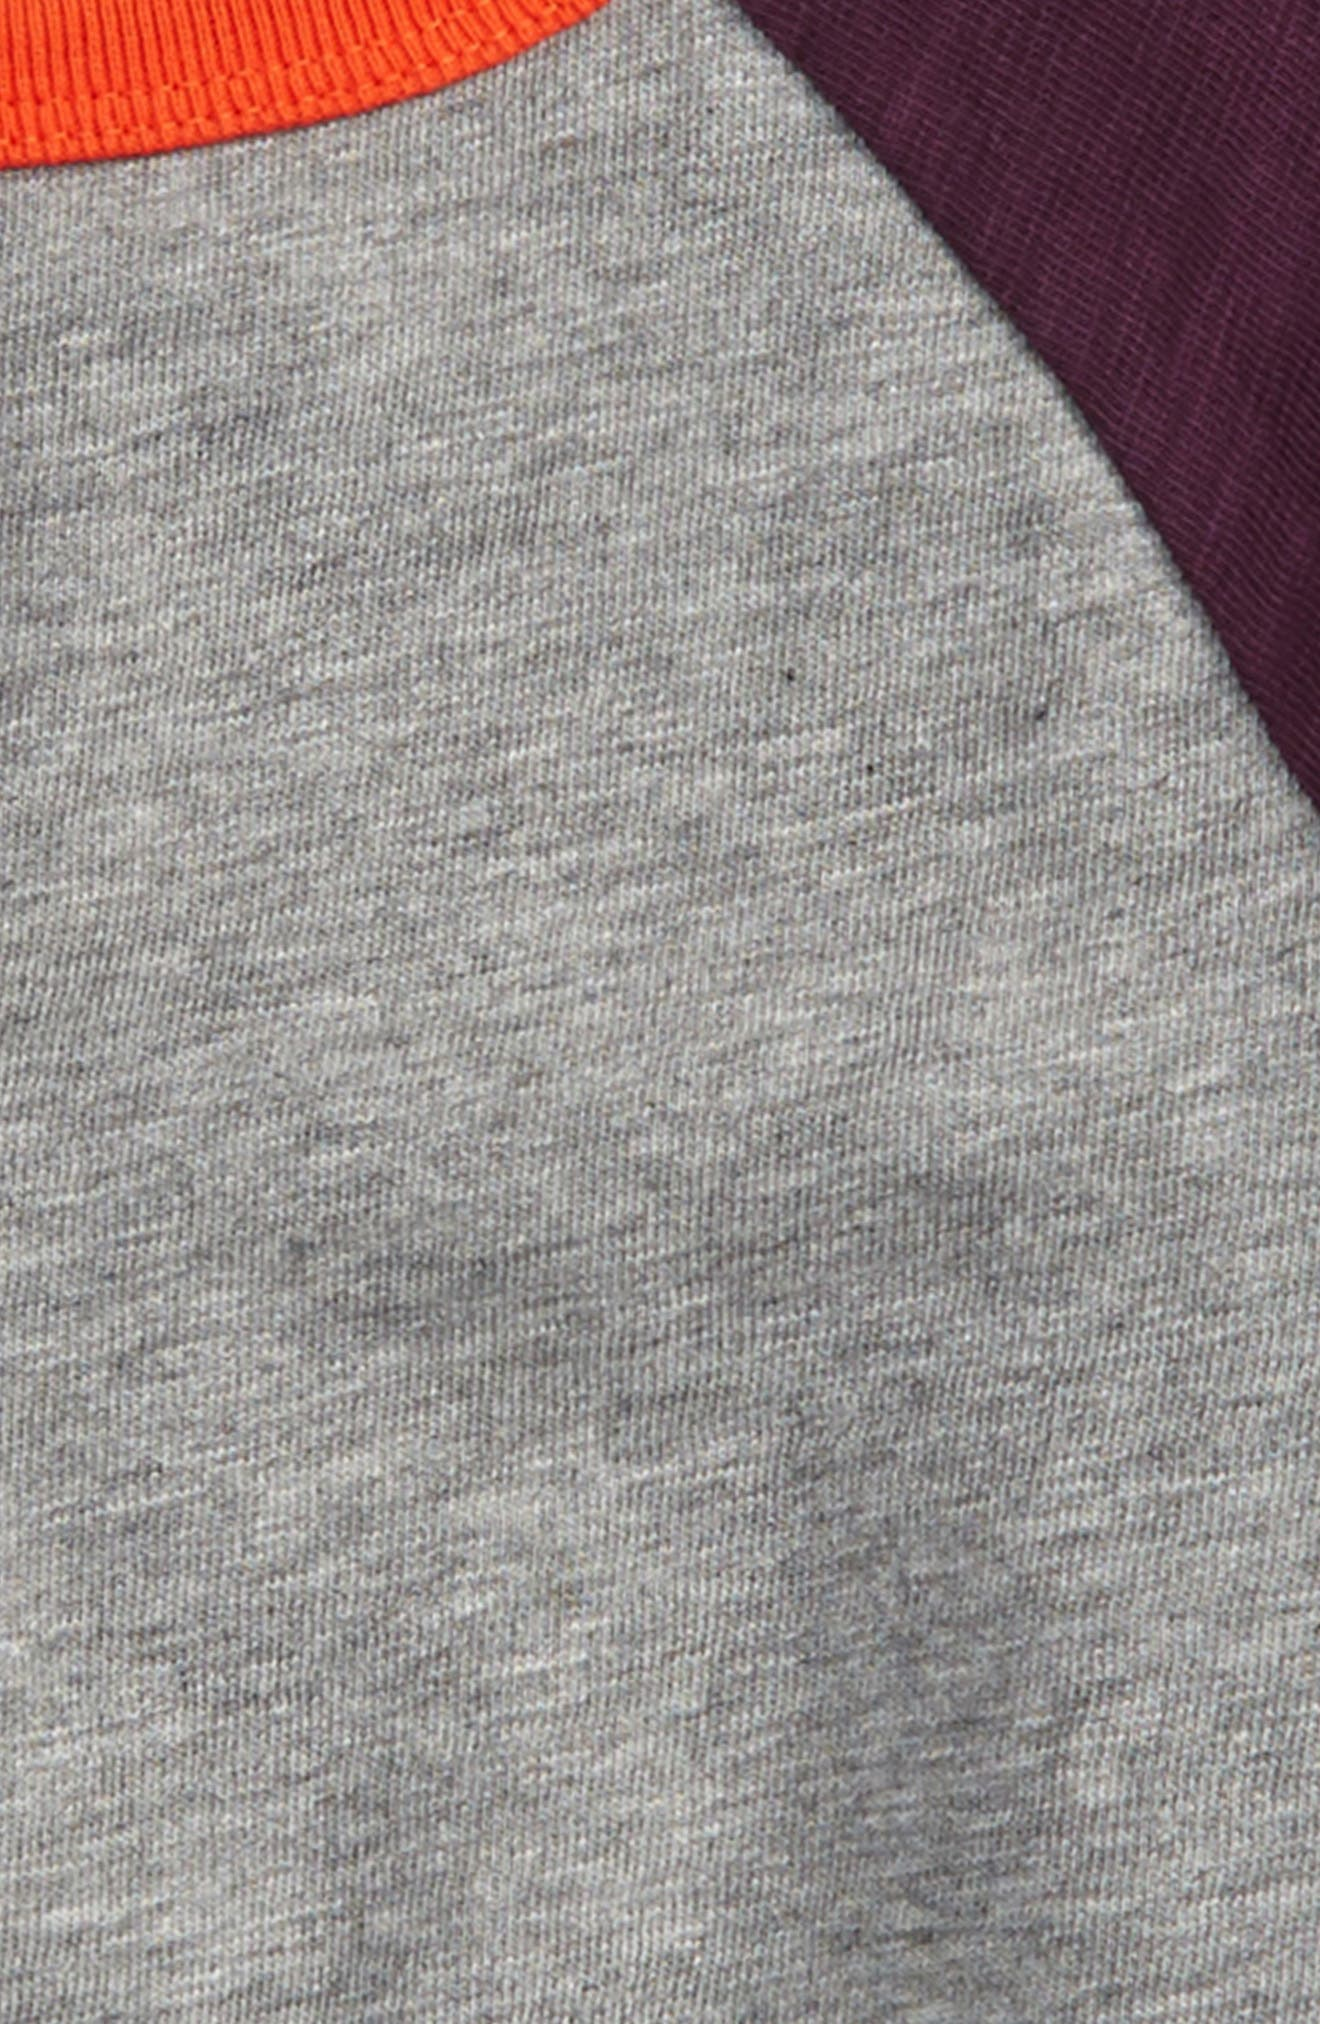 Raglan Sleeve T-Shirt,                             Alternate thumbnail 2, color,                             062